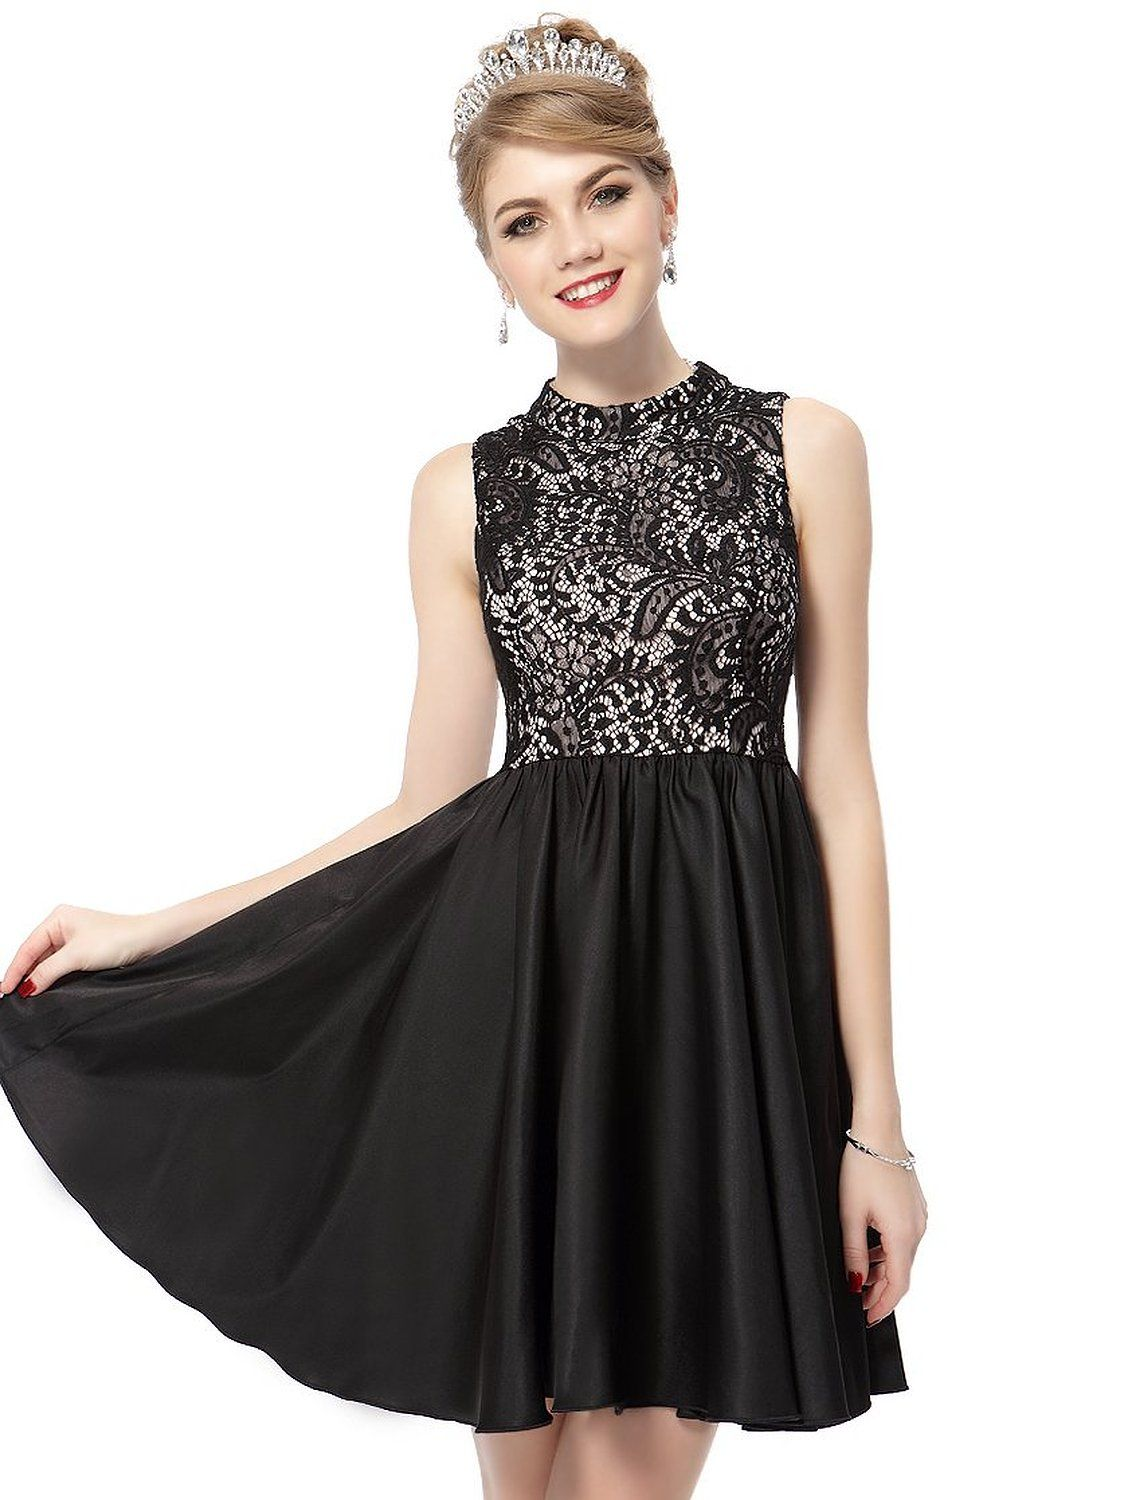 cfc90f59983a dresses-for-juniors-formal-cute-semi-formal-dresses-for-juniors-black-